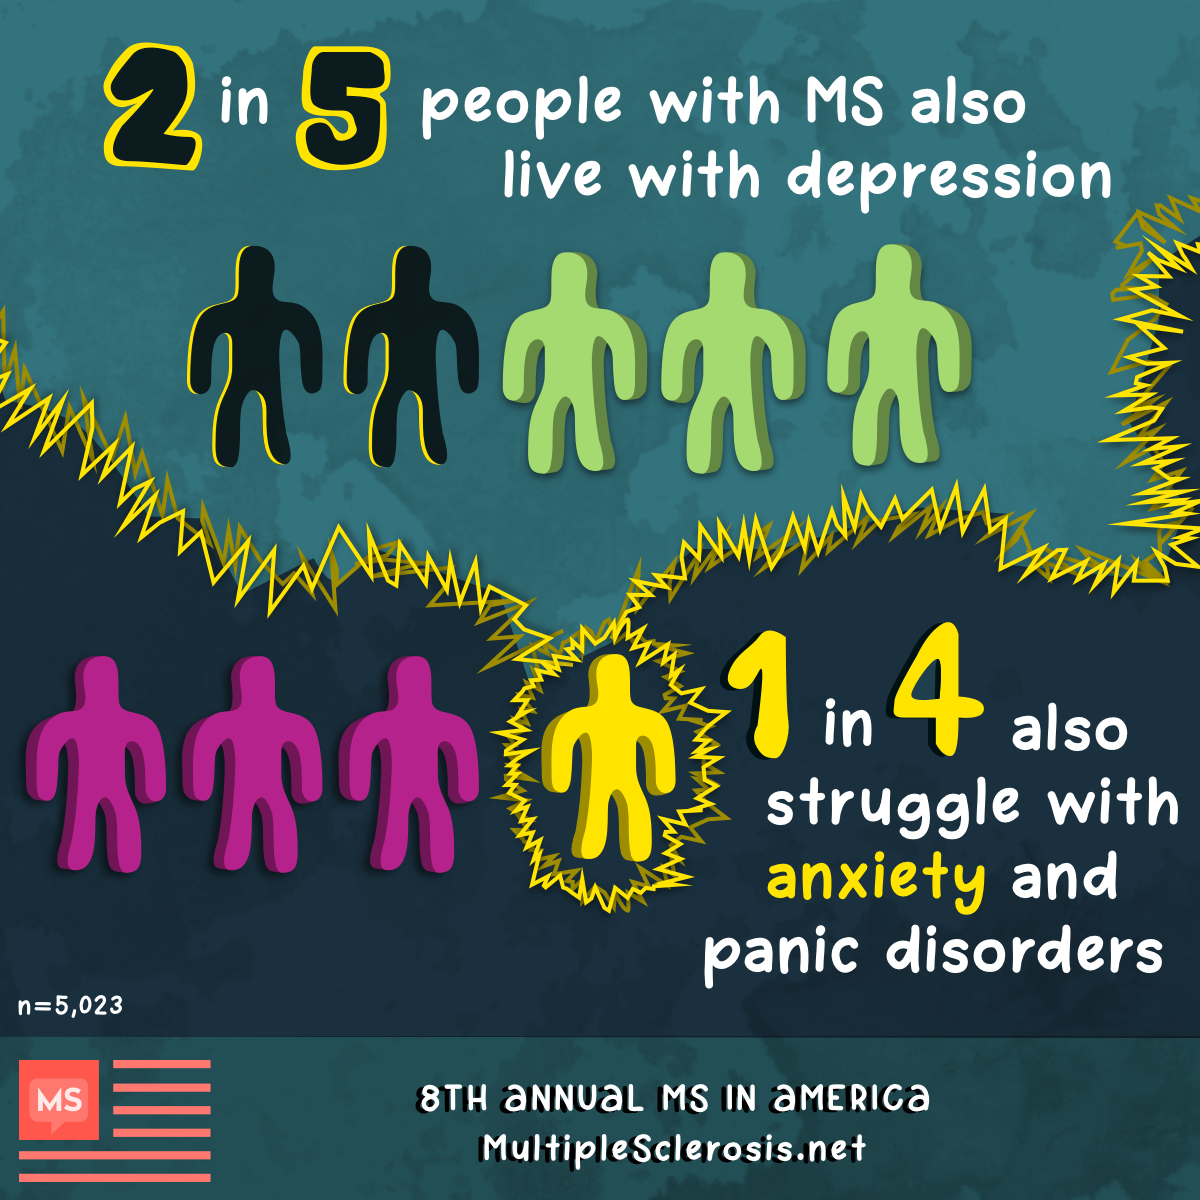 2 in 5 people with MS live with depression and 1 in 4 struggle with anxiety and panic disorders.